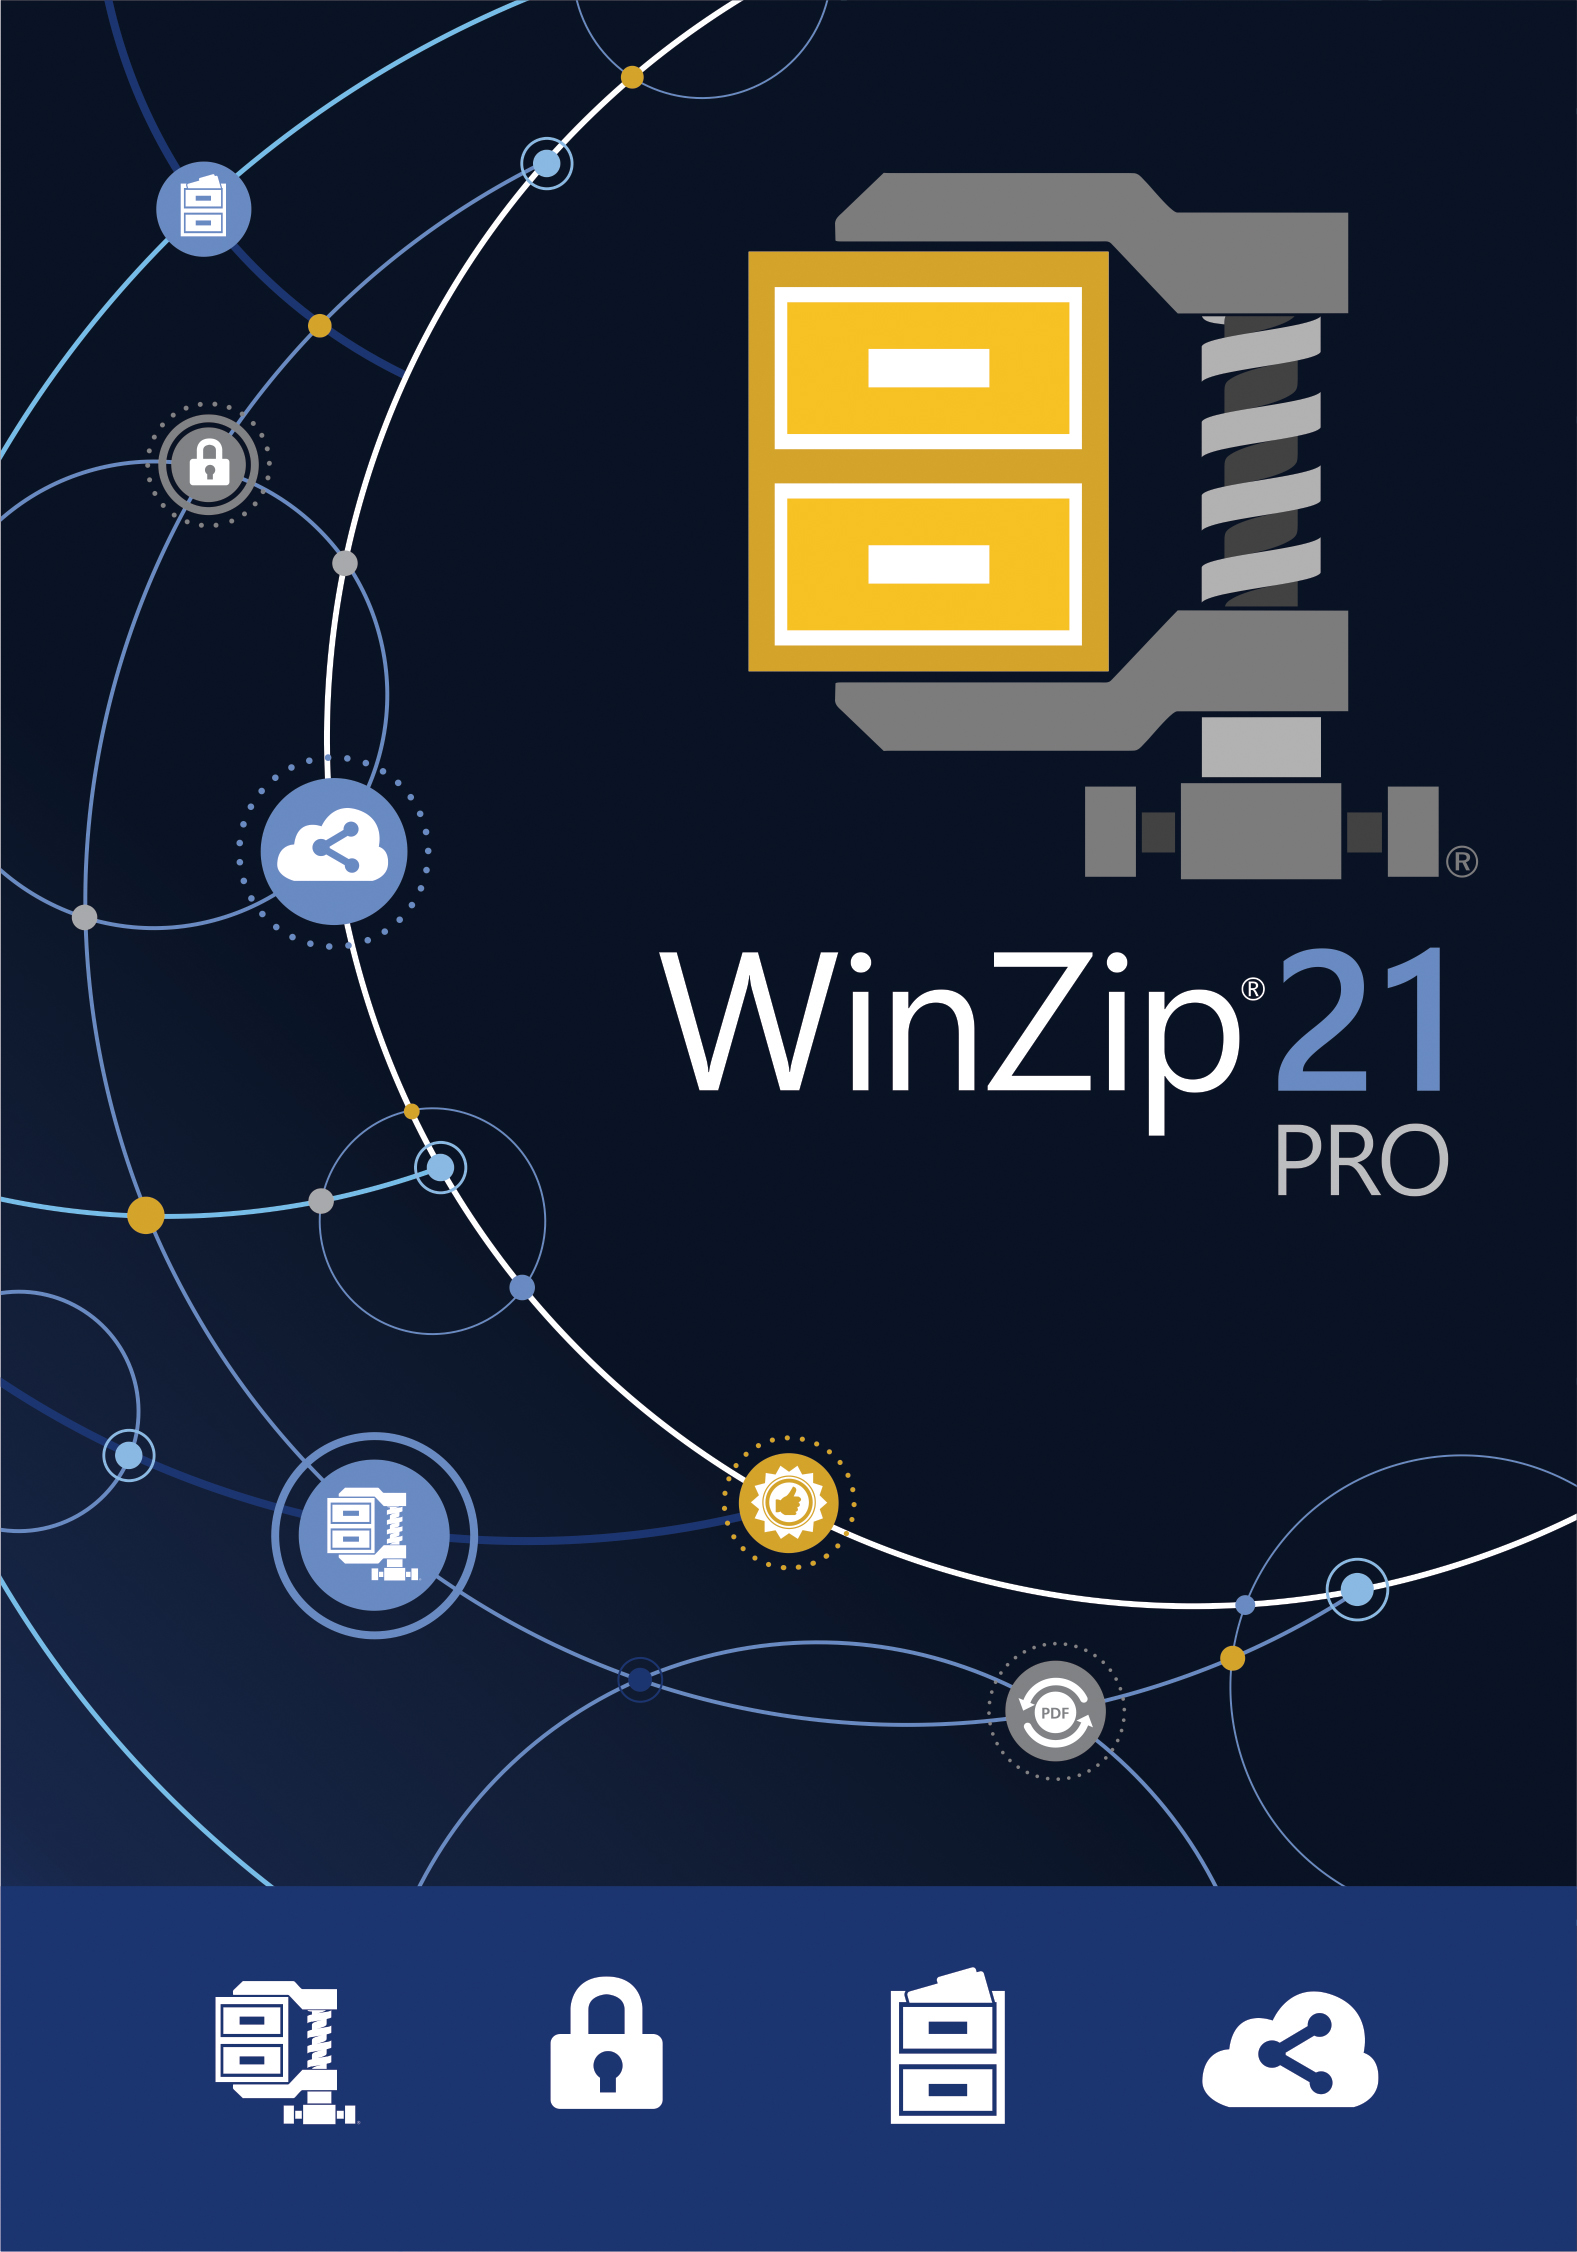 WinZip Pro Download Old Version